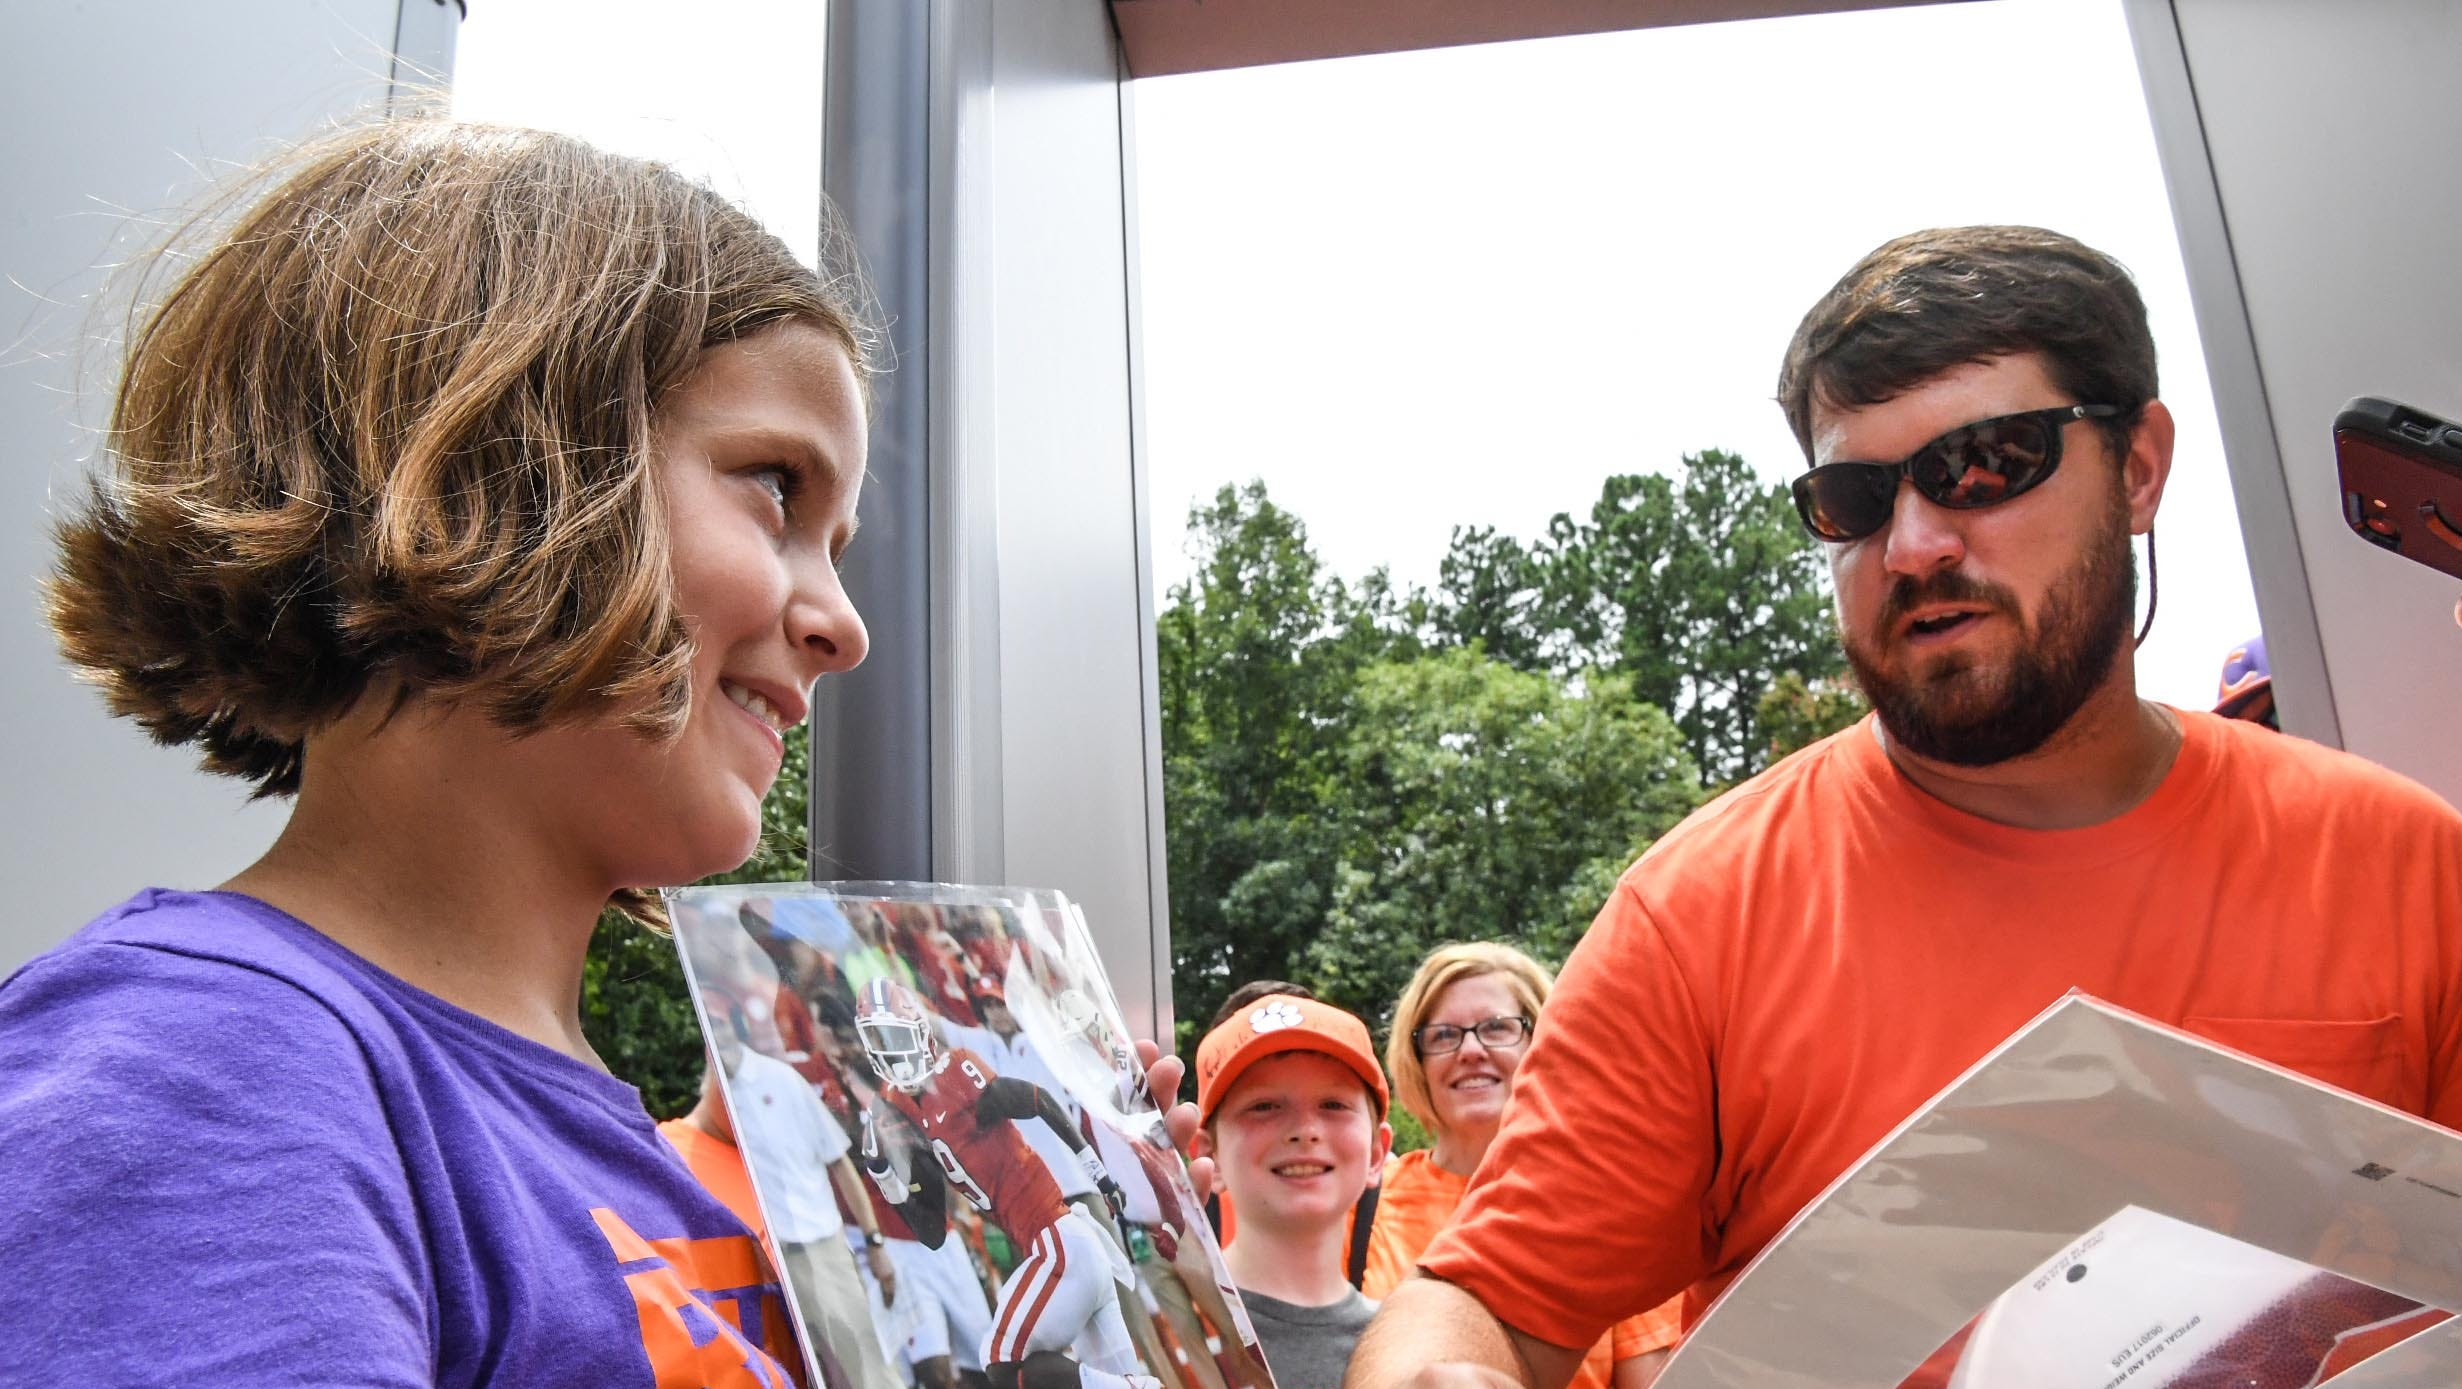 Meredith Thompson, left, 11, of Conway holds a photo of Travis Etienne near her father Michael Thompson, waiting to see players at the Clemson University football fan day in Memorial Stadium on Sunday, August 12, 2018.